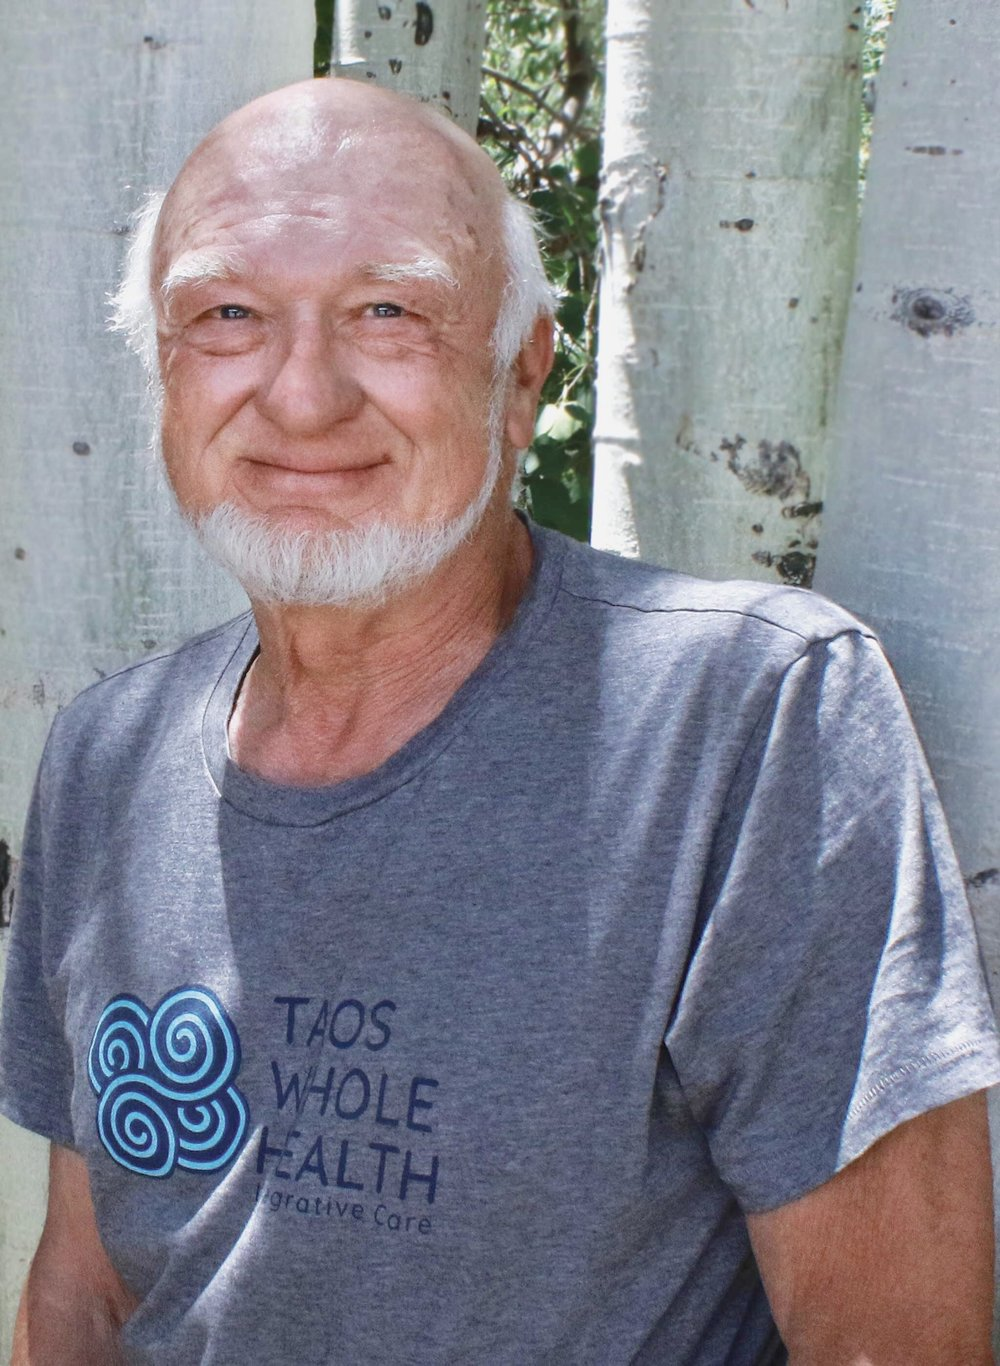 Carl Wagner - Taos Whole Health Integrative Care